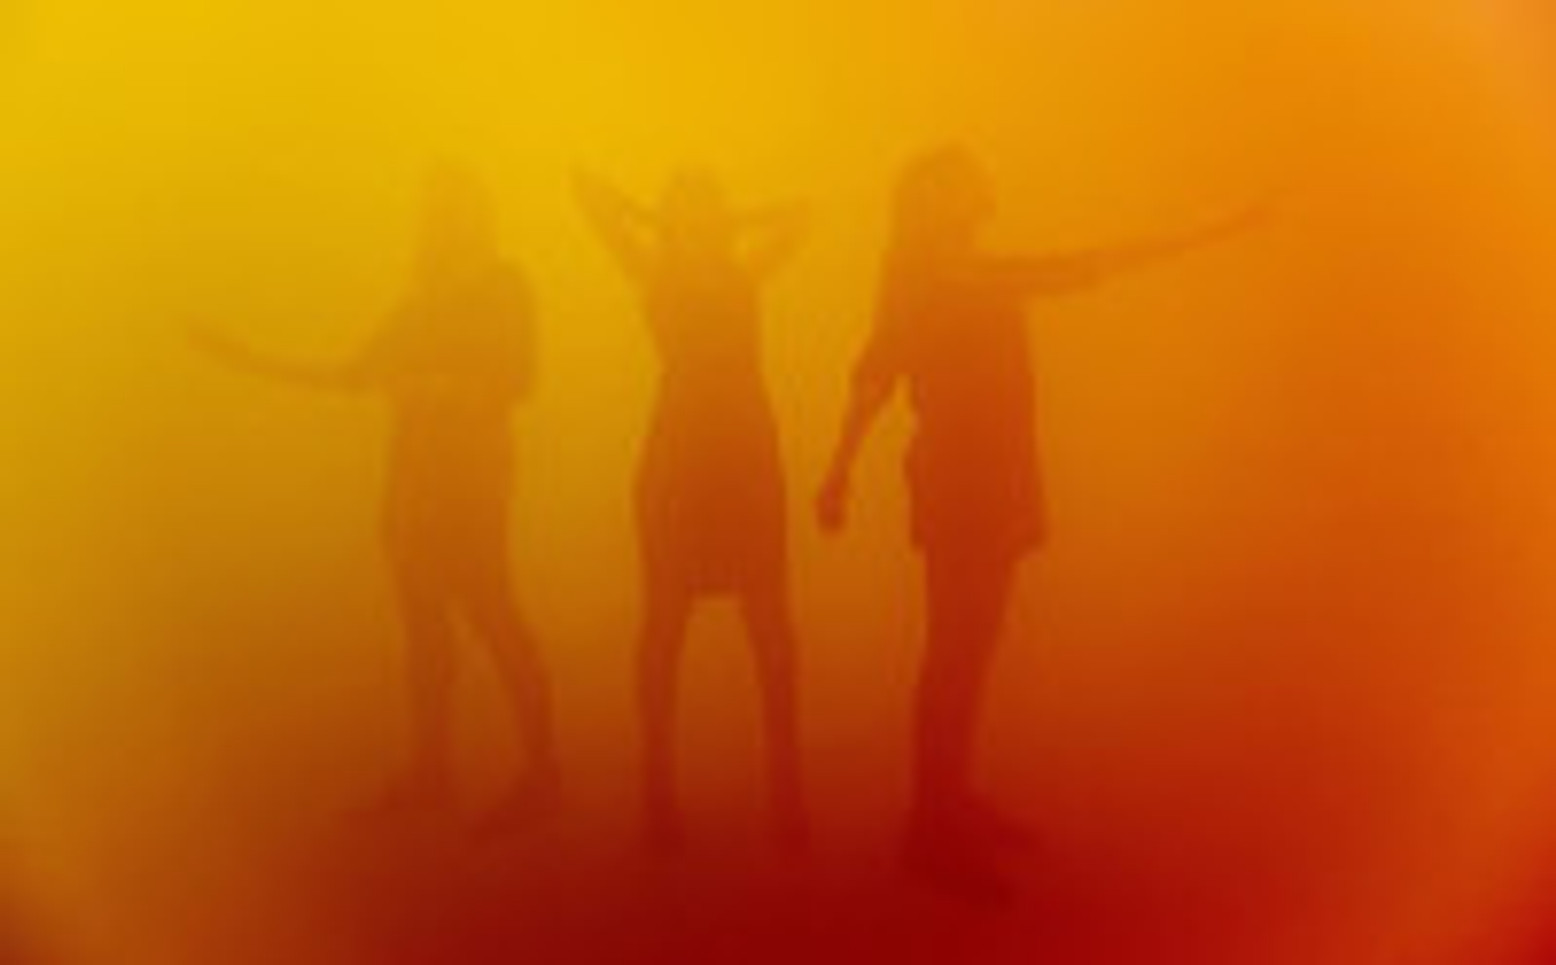 YellowBluePink by Ann Veronica Janssens at The Wellcome Collection